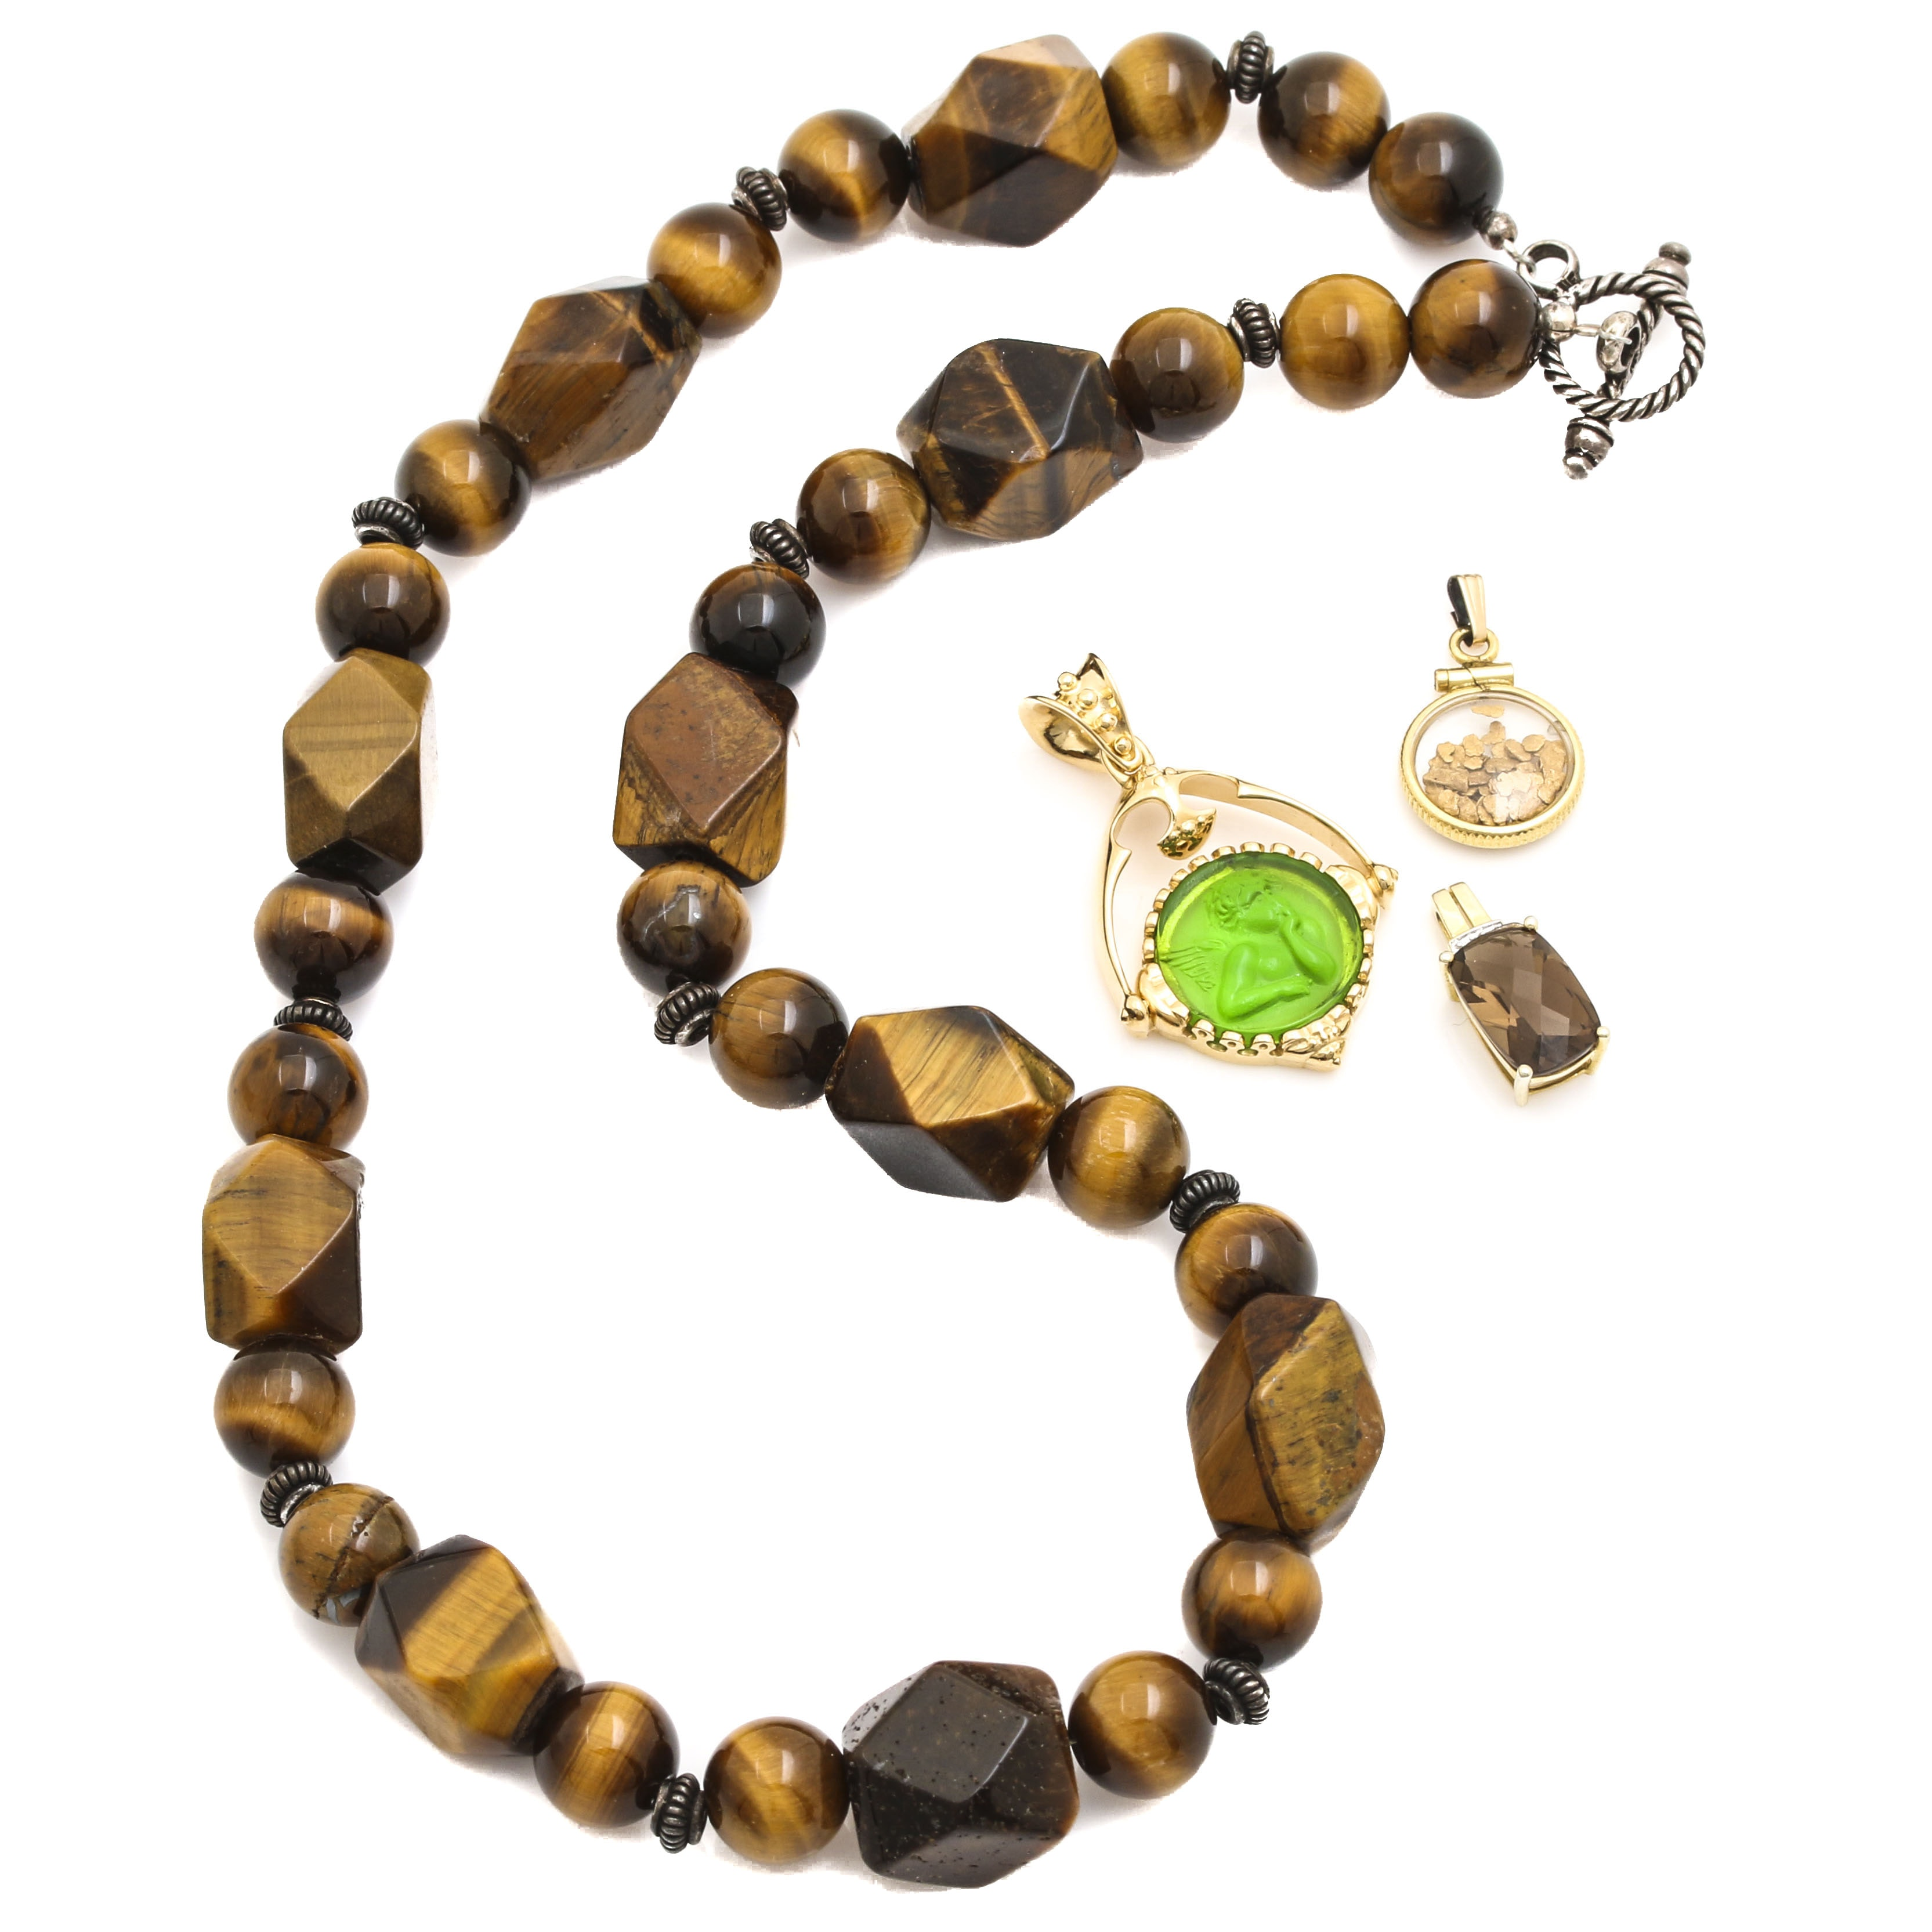 Sterling Silver and Gold Filled Jewelry Including Tiger's Eye Necklace